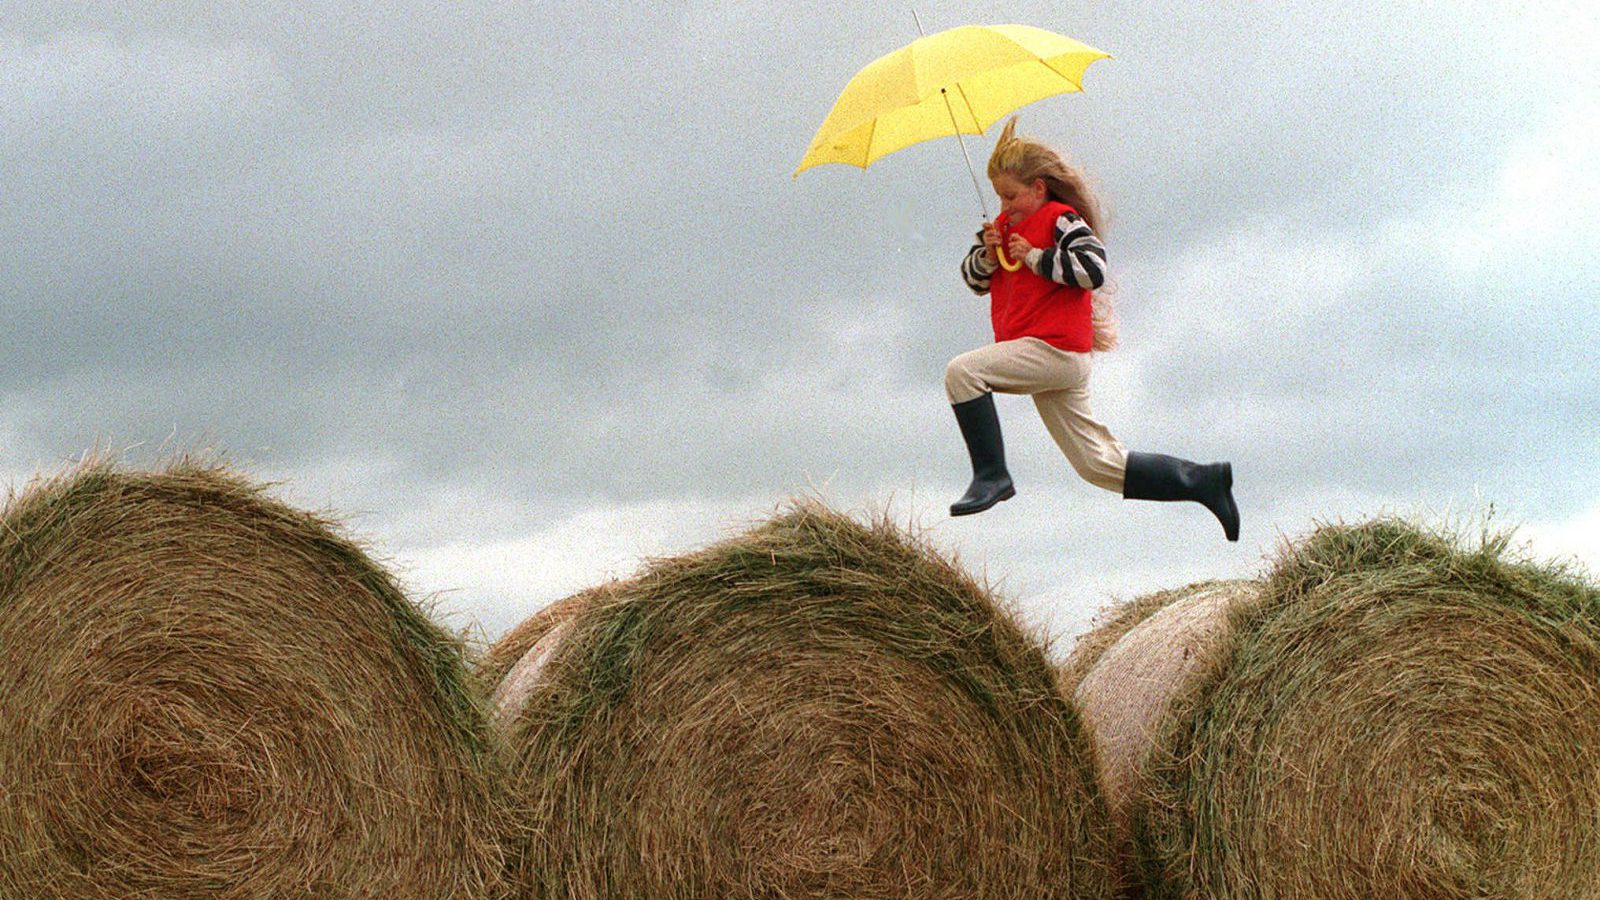 With her yellow umbrella and her red sweater ten-year-old Tina from Rathenow is a colourful blot against the gray and rainy sky as she jumps over lined-up haybales on a field in Wanzer, Saxony-Anhalt, Tuesday June 24, 1997. The girl from the Brandenburg region is on vacation here ignoring the long lasting bad weather period with her hay-bale-hopping activities.